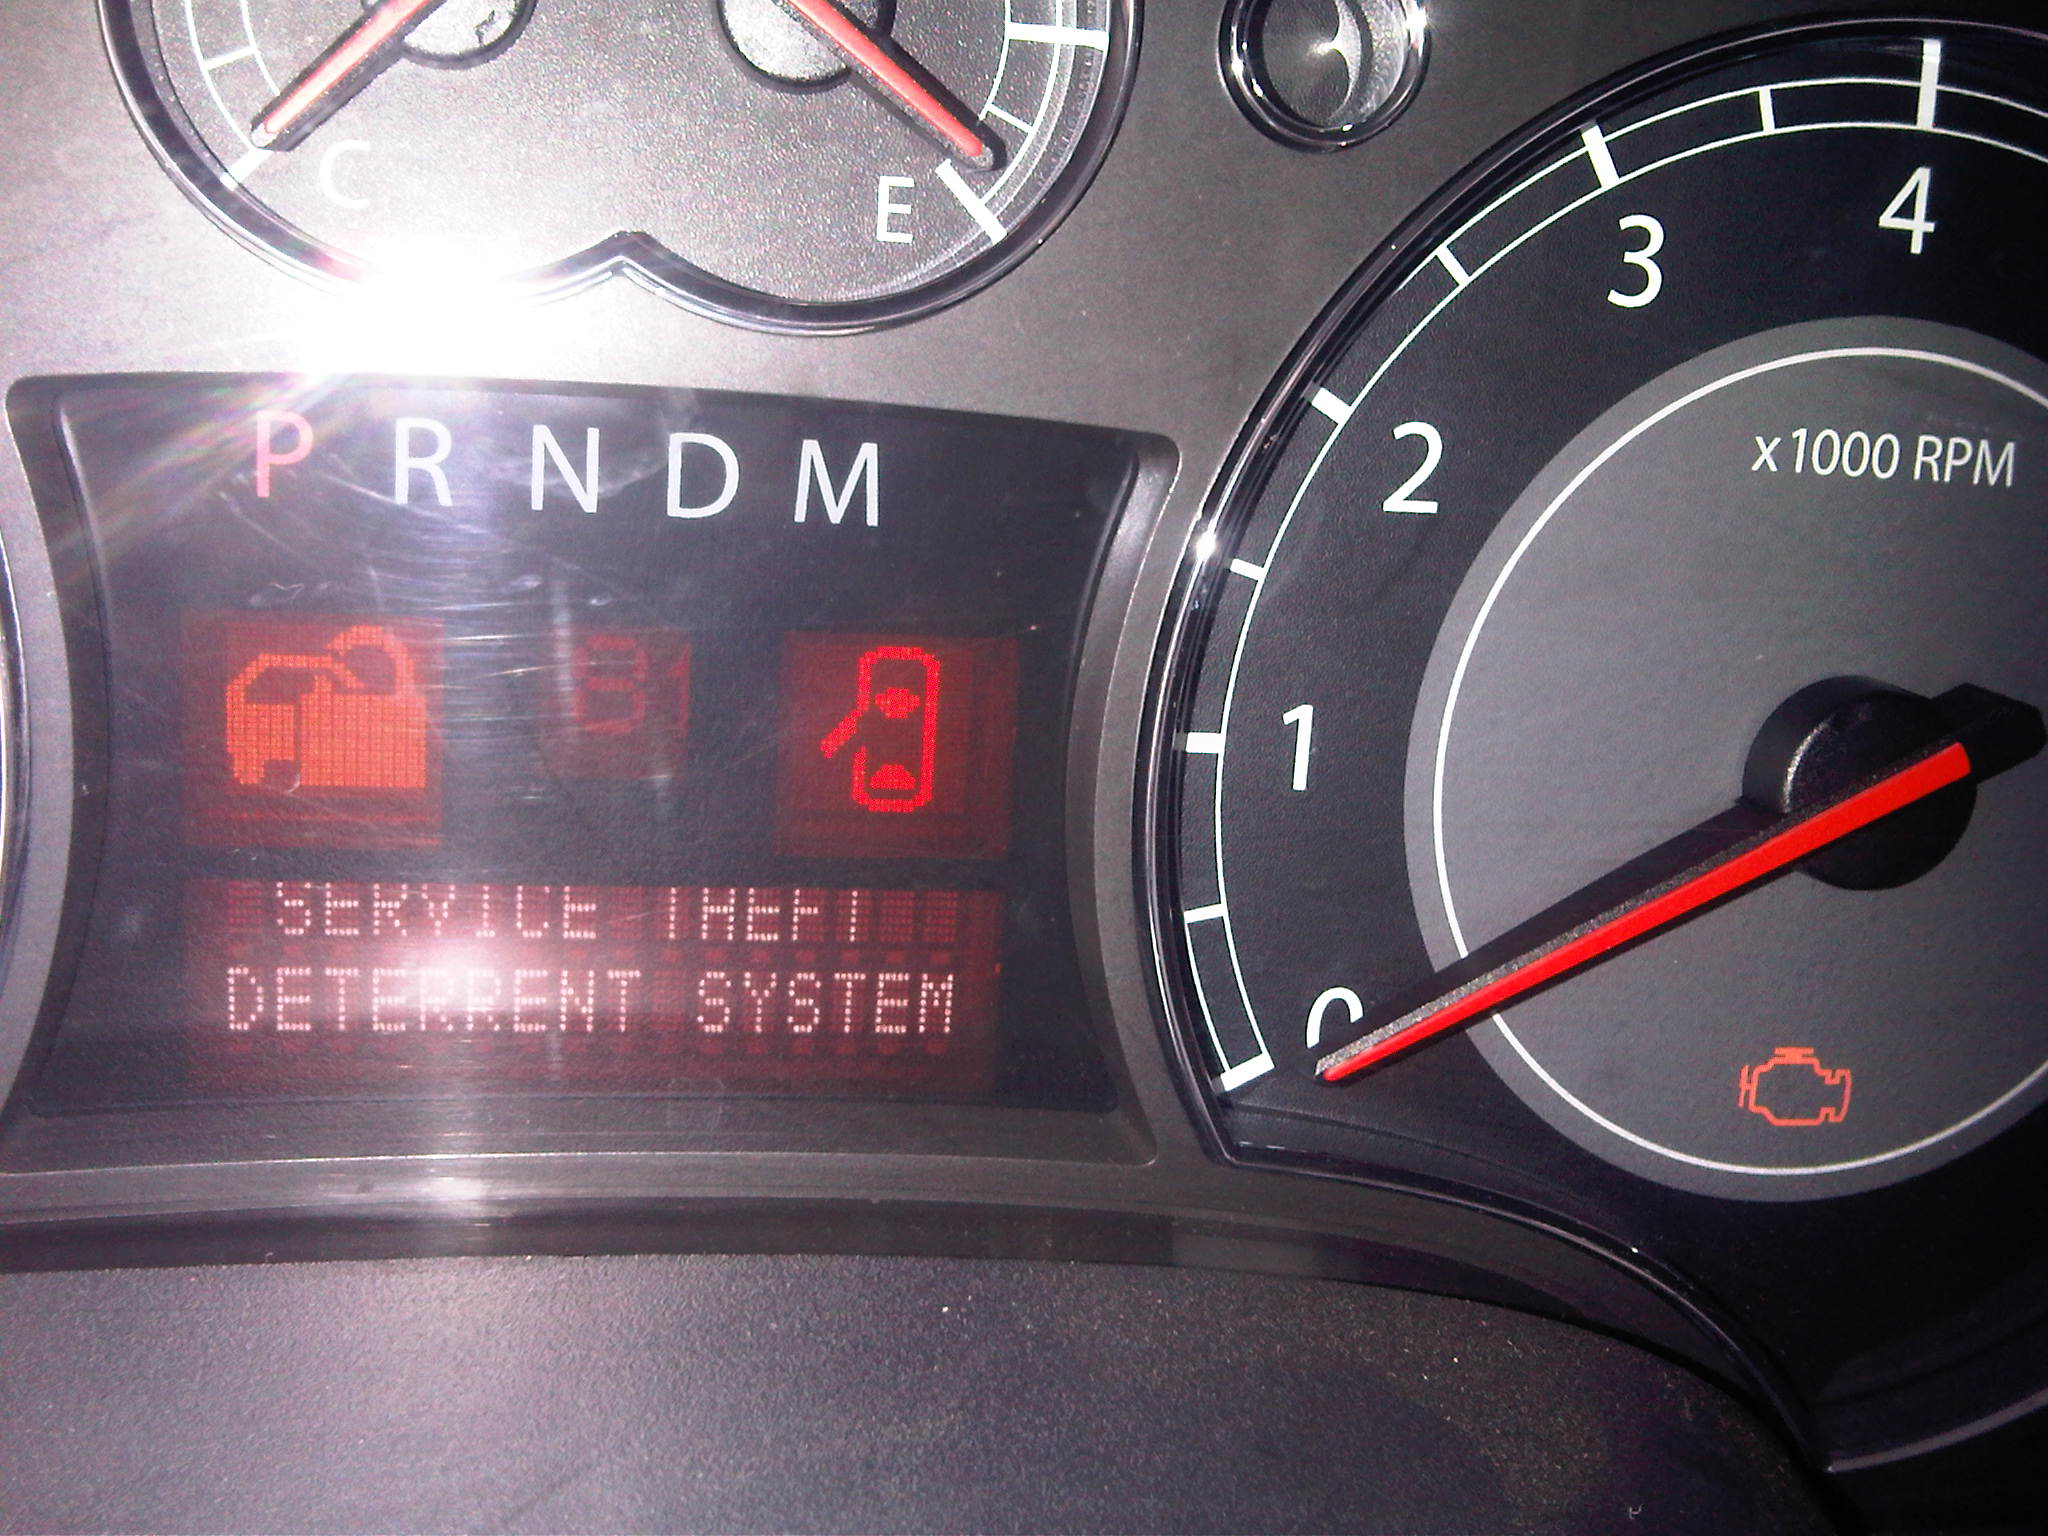 2007 Suzuki XL-7, theft deterrent light is on, the instrument panel ...